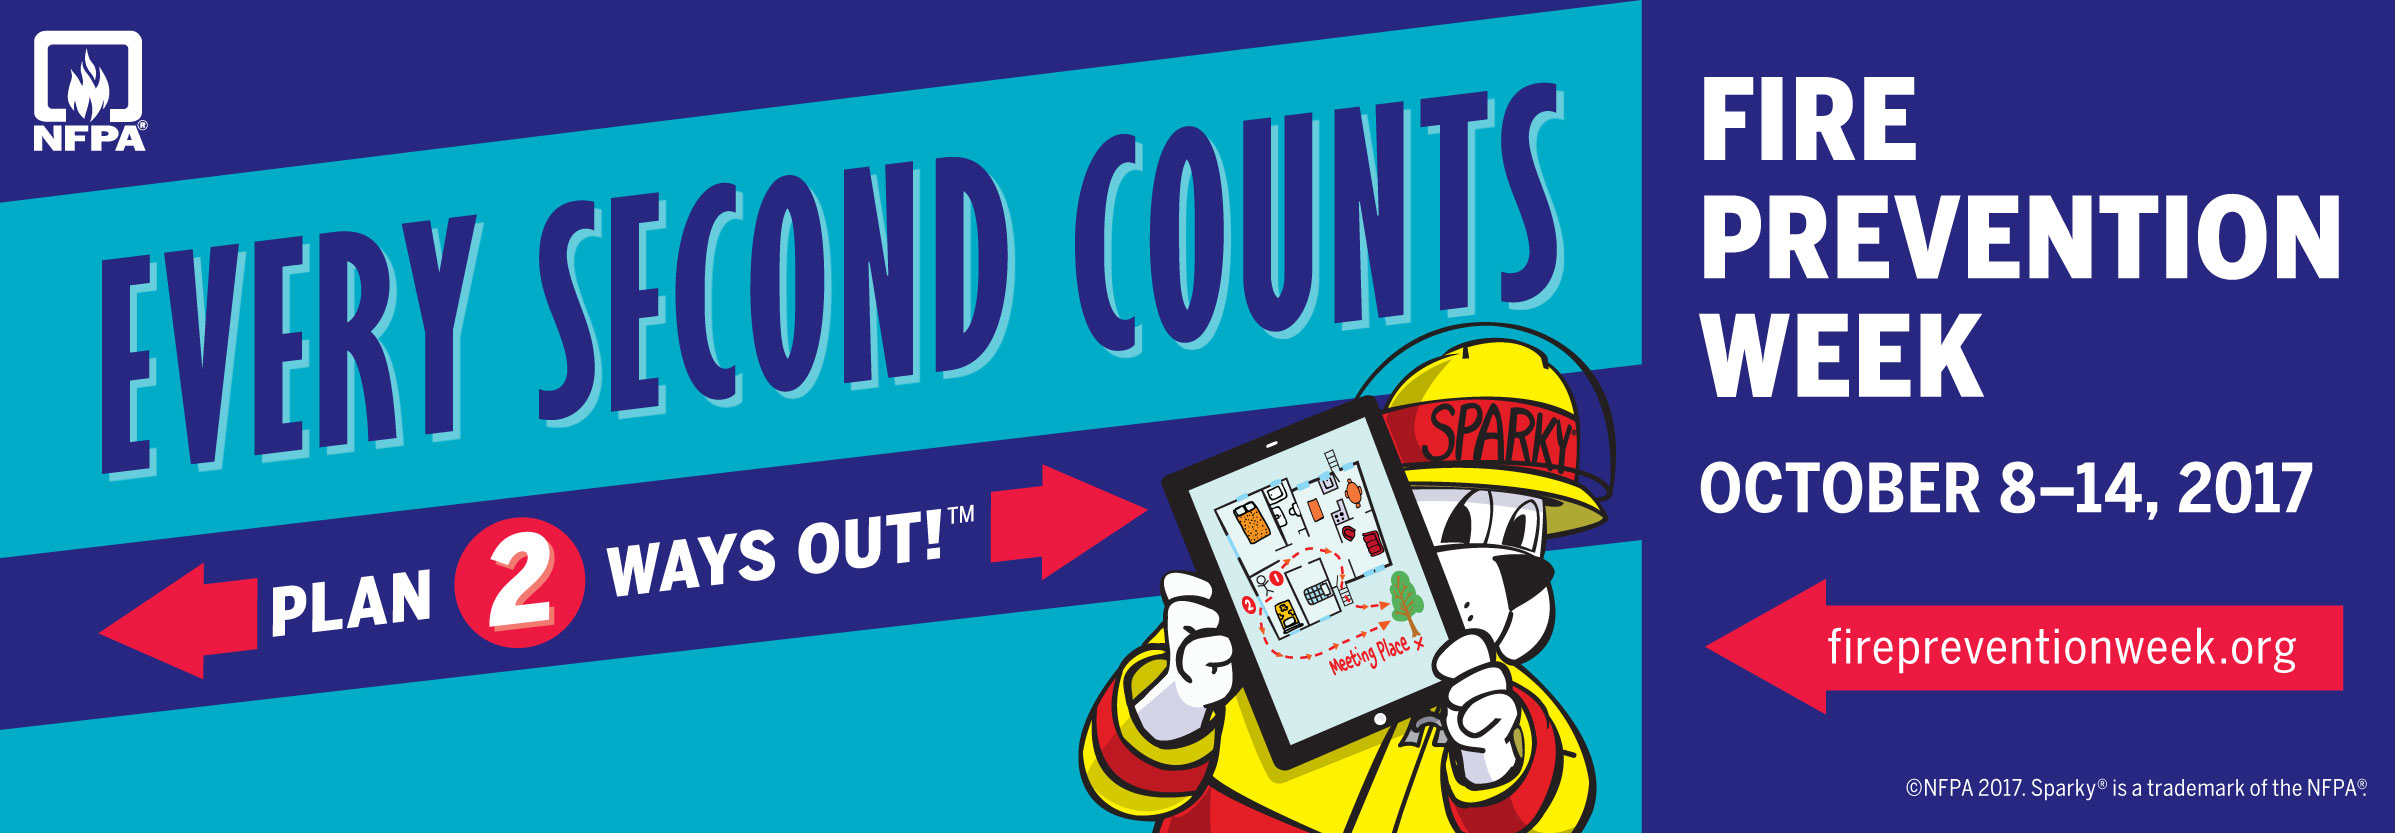 Every Second Counts: Fire Prevention Week 2017